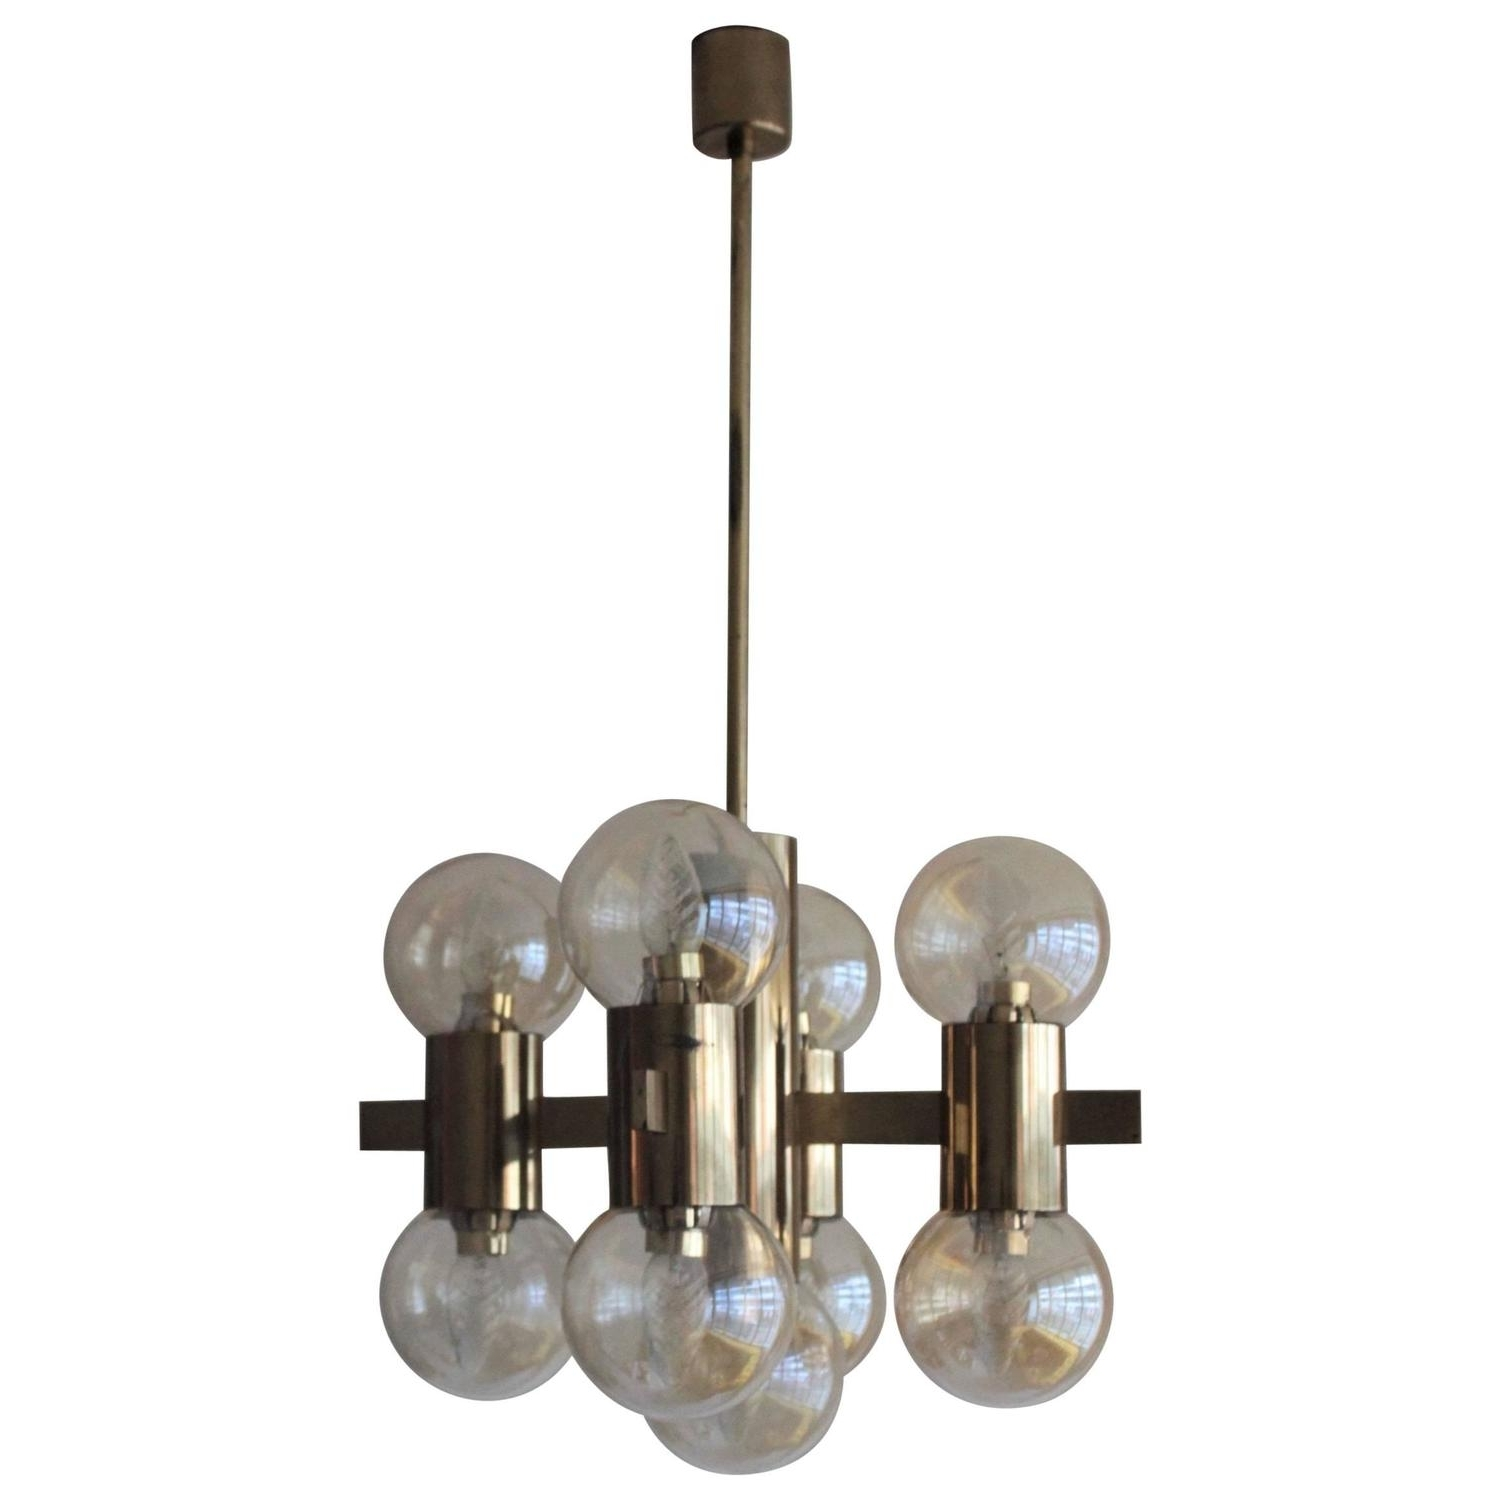 Italian Brass Smoked Glass Chandelier, 1970S For Sale At 1Stdibs Within Most Recent Smoked Glass Chandelier (Gallery 7 of 15)